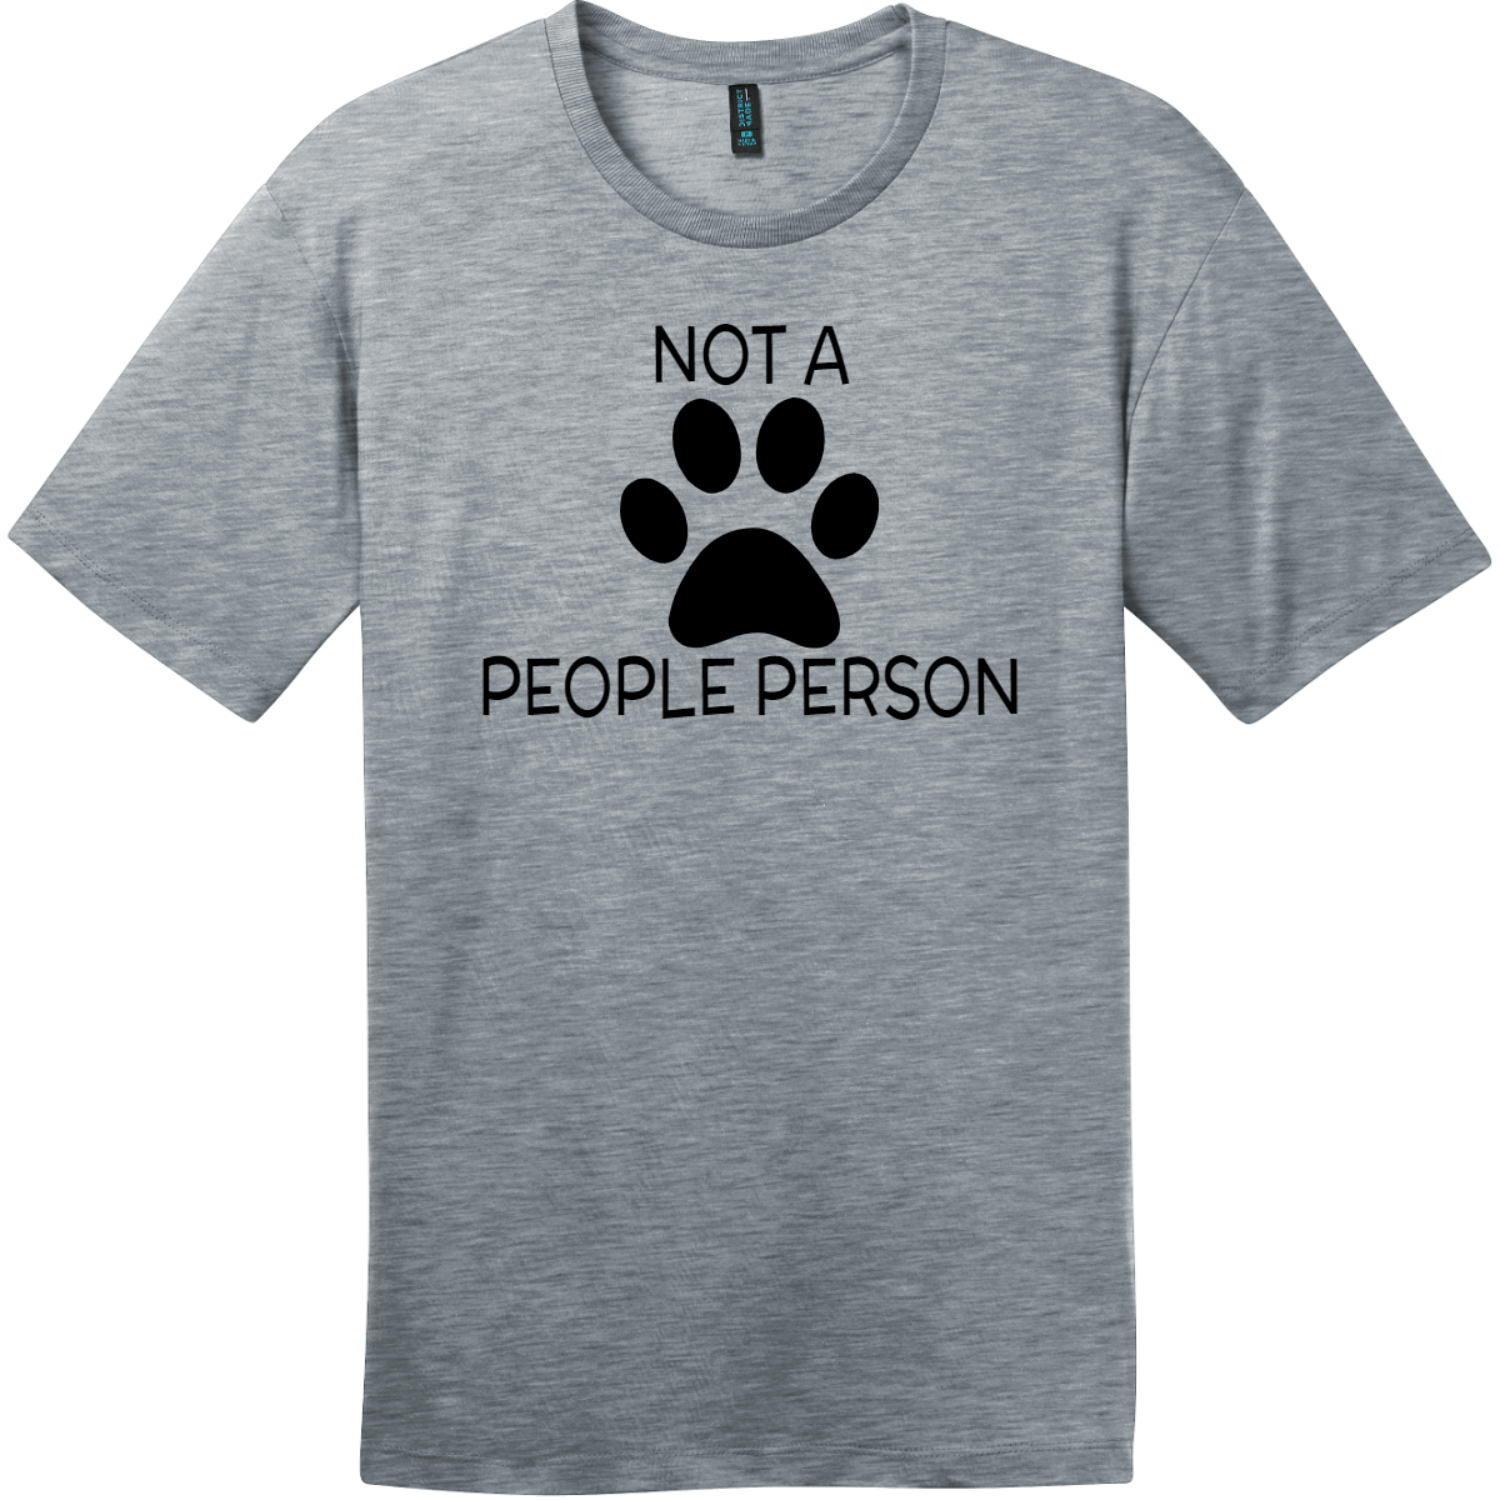 Not A People Person Dog Paw T-Shirt Heathered Steel District Perfect Weight Tee DT104